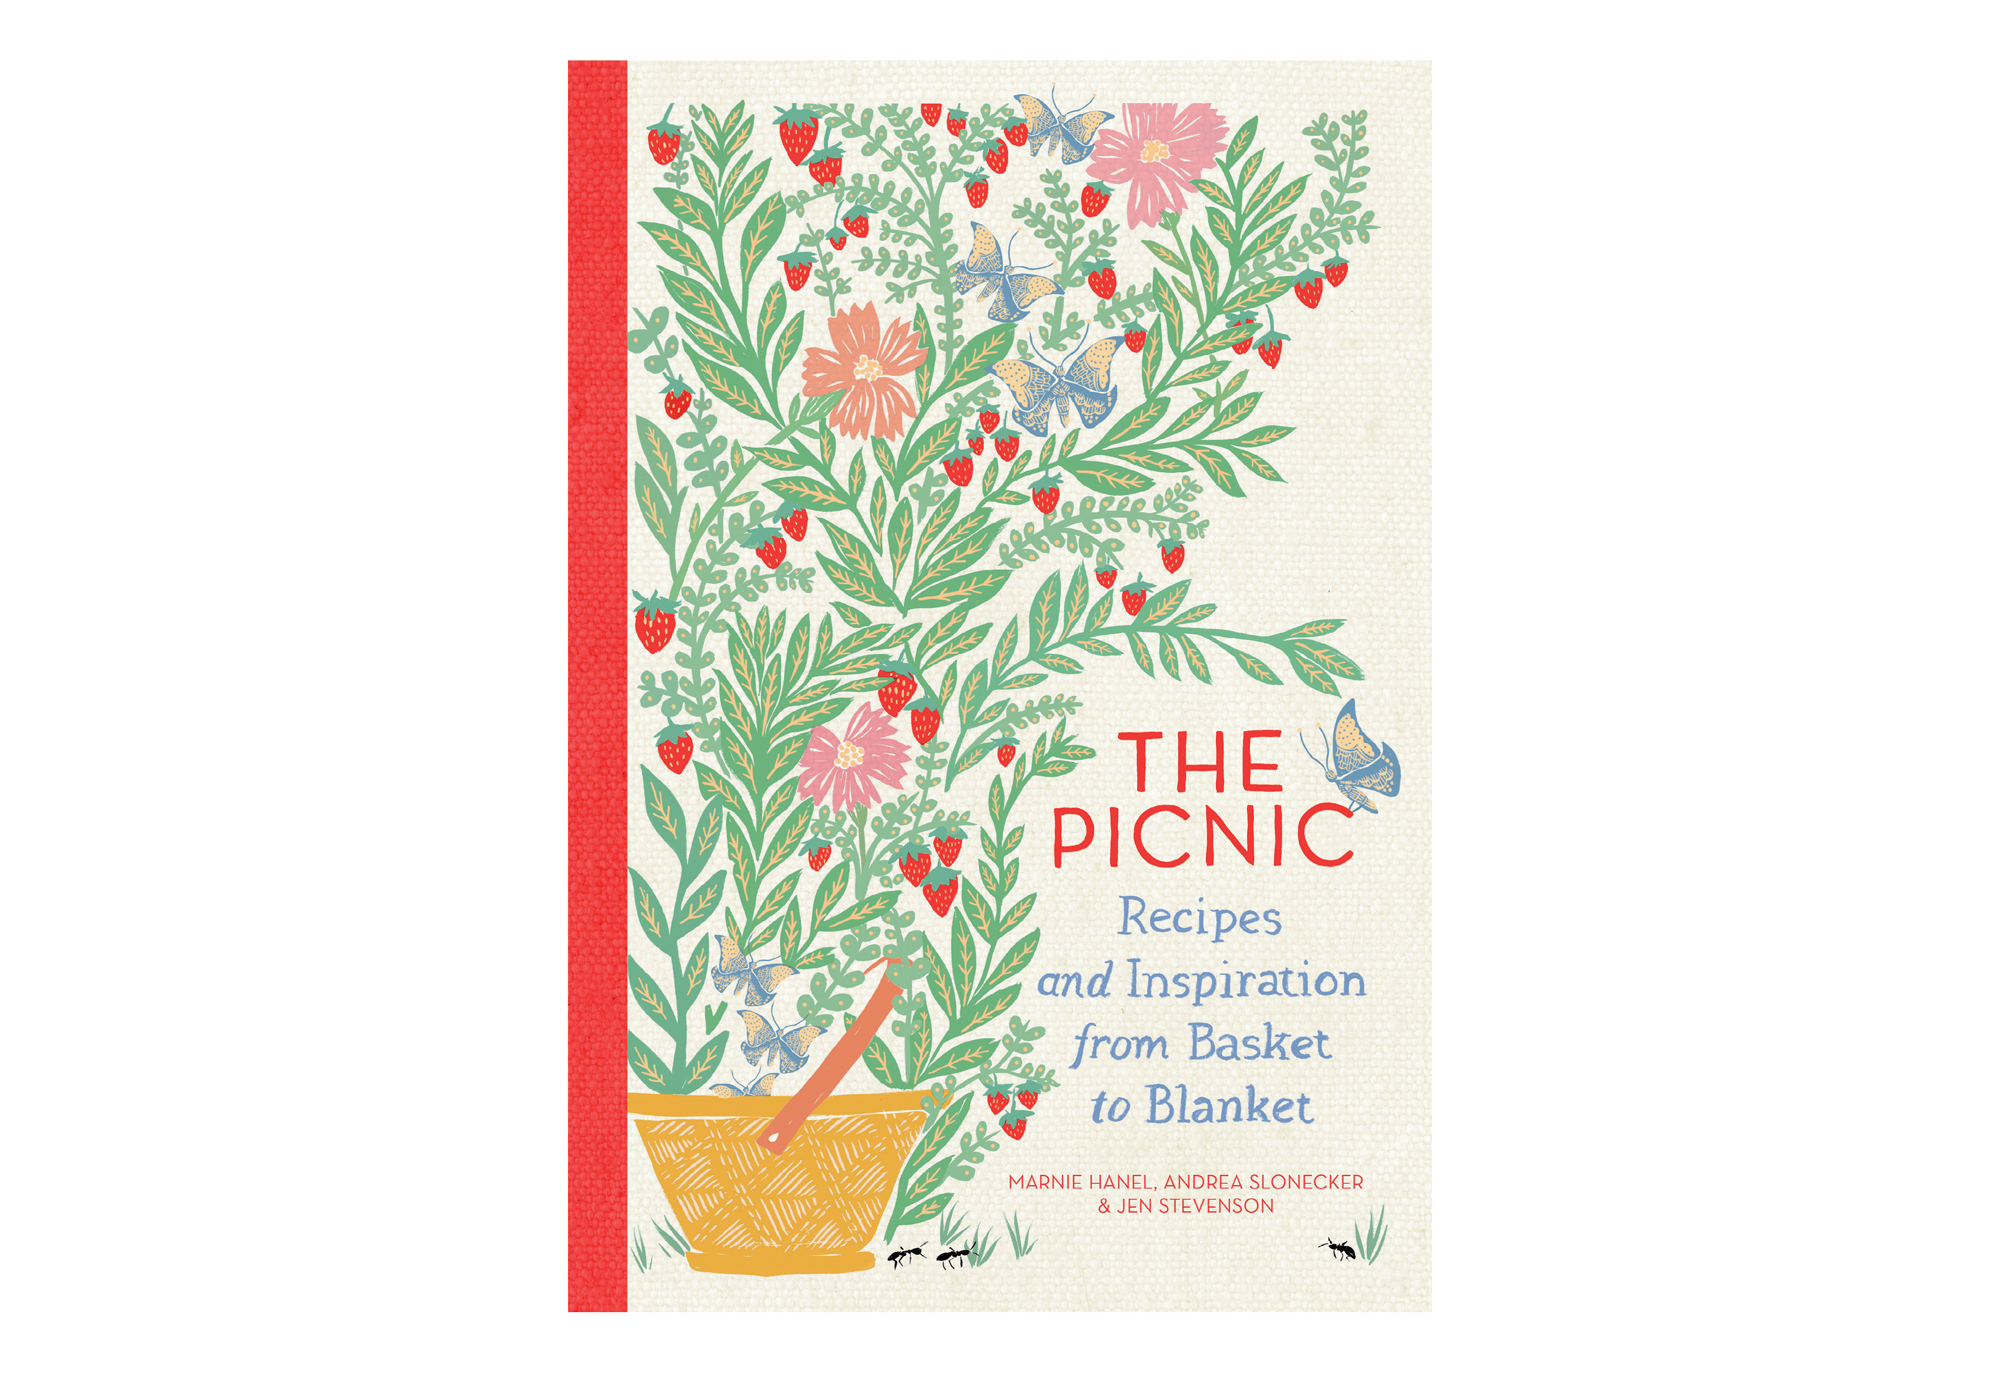 The Picnic: Recipes and Inspiration from Basket to Blanket, by Marnie Hanel, Andrea Slonecker, and Jen Stevenson